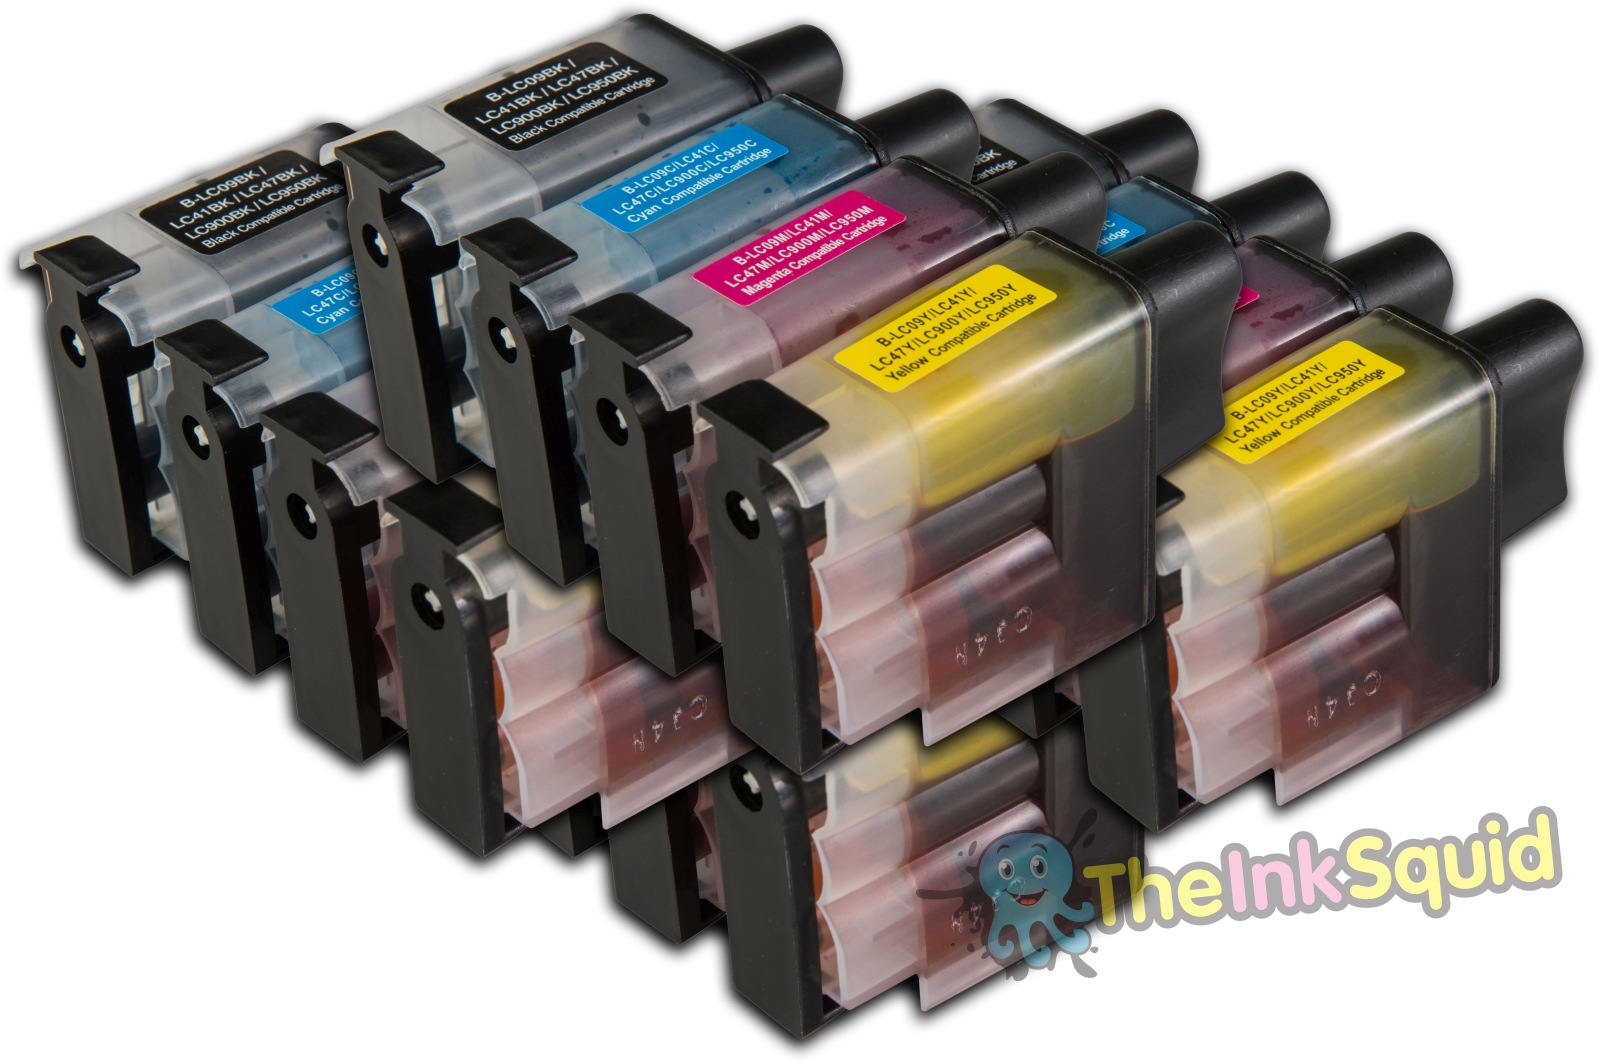 16 LC900 Compatible Brother Printer Ink Cartridges Black